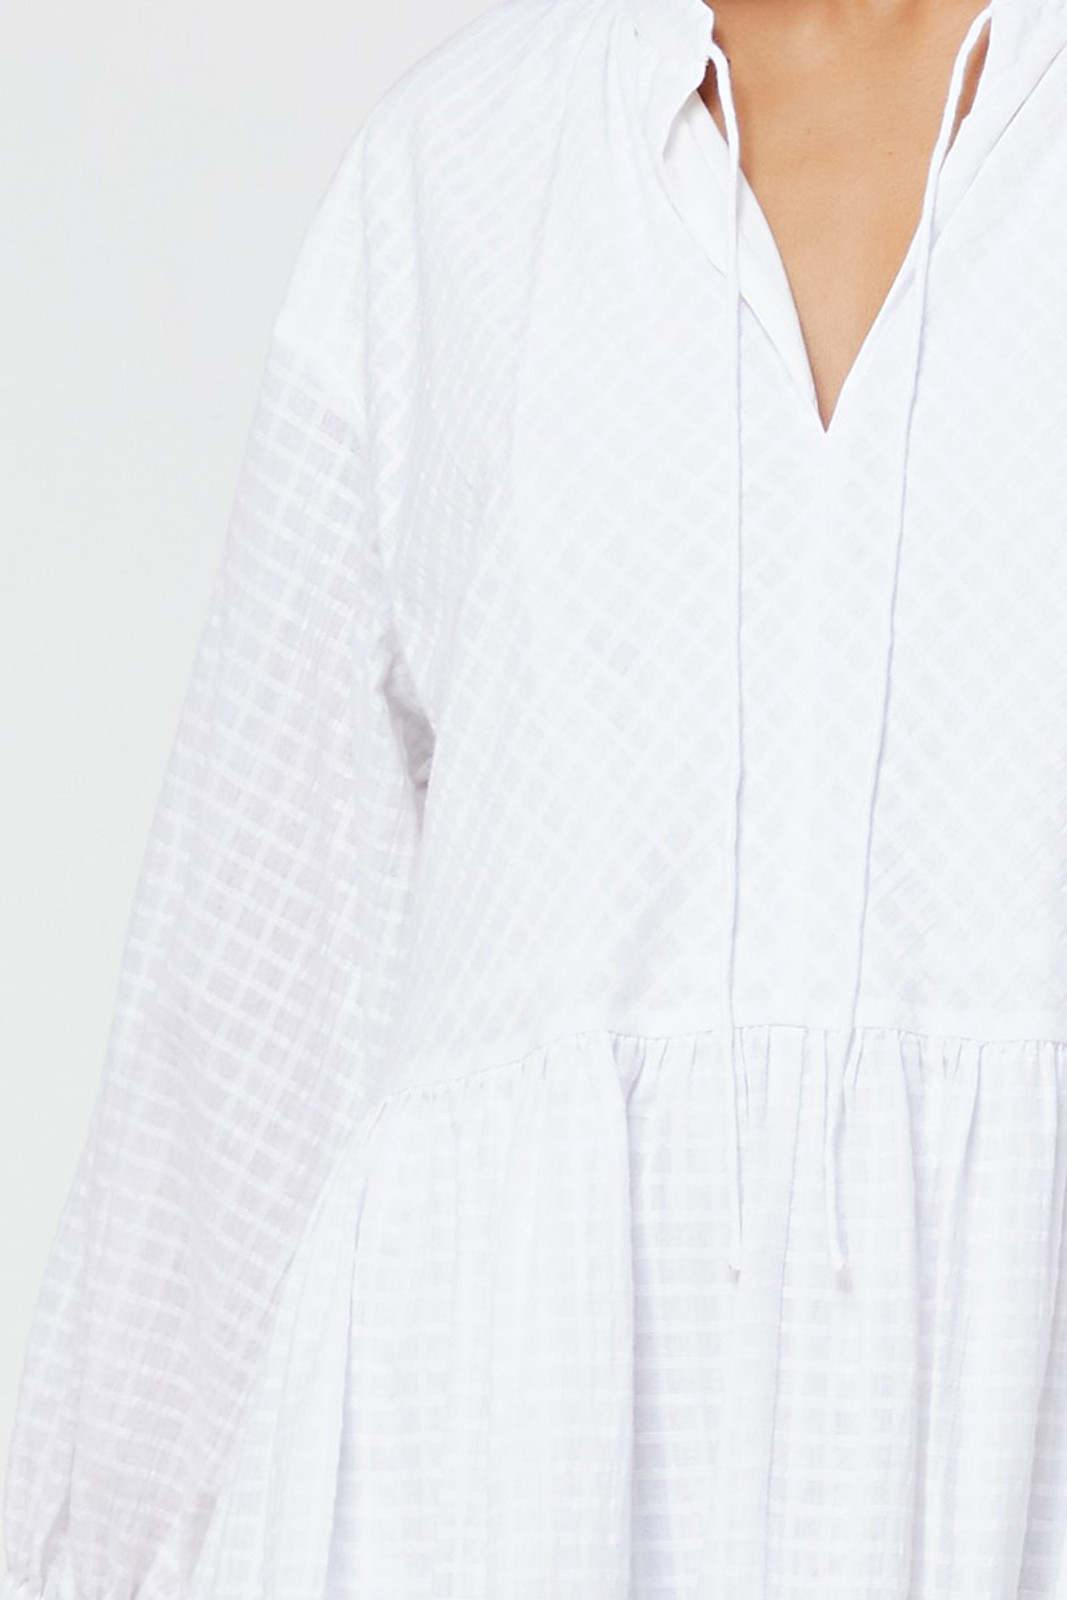 Elka Collective Ophelie Dress White  9